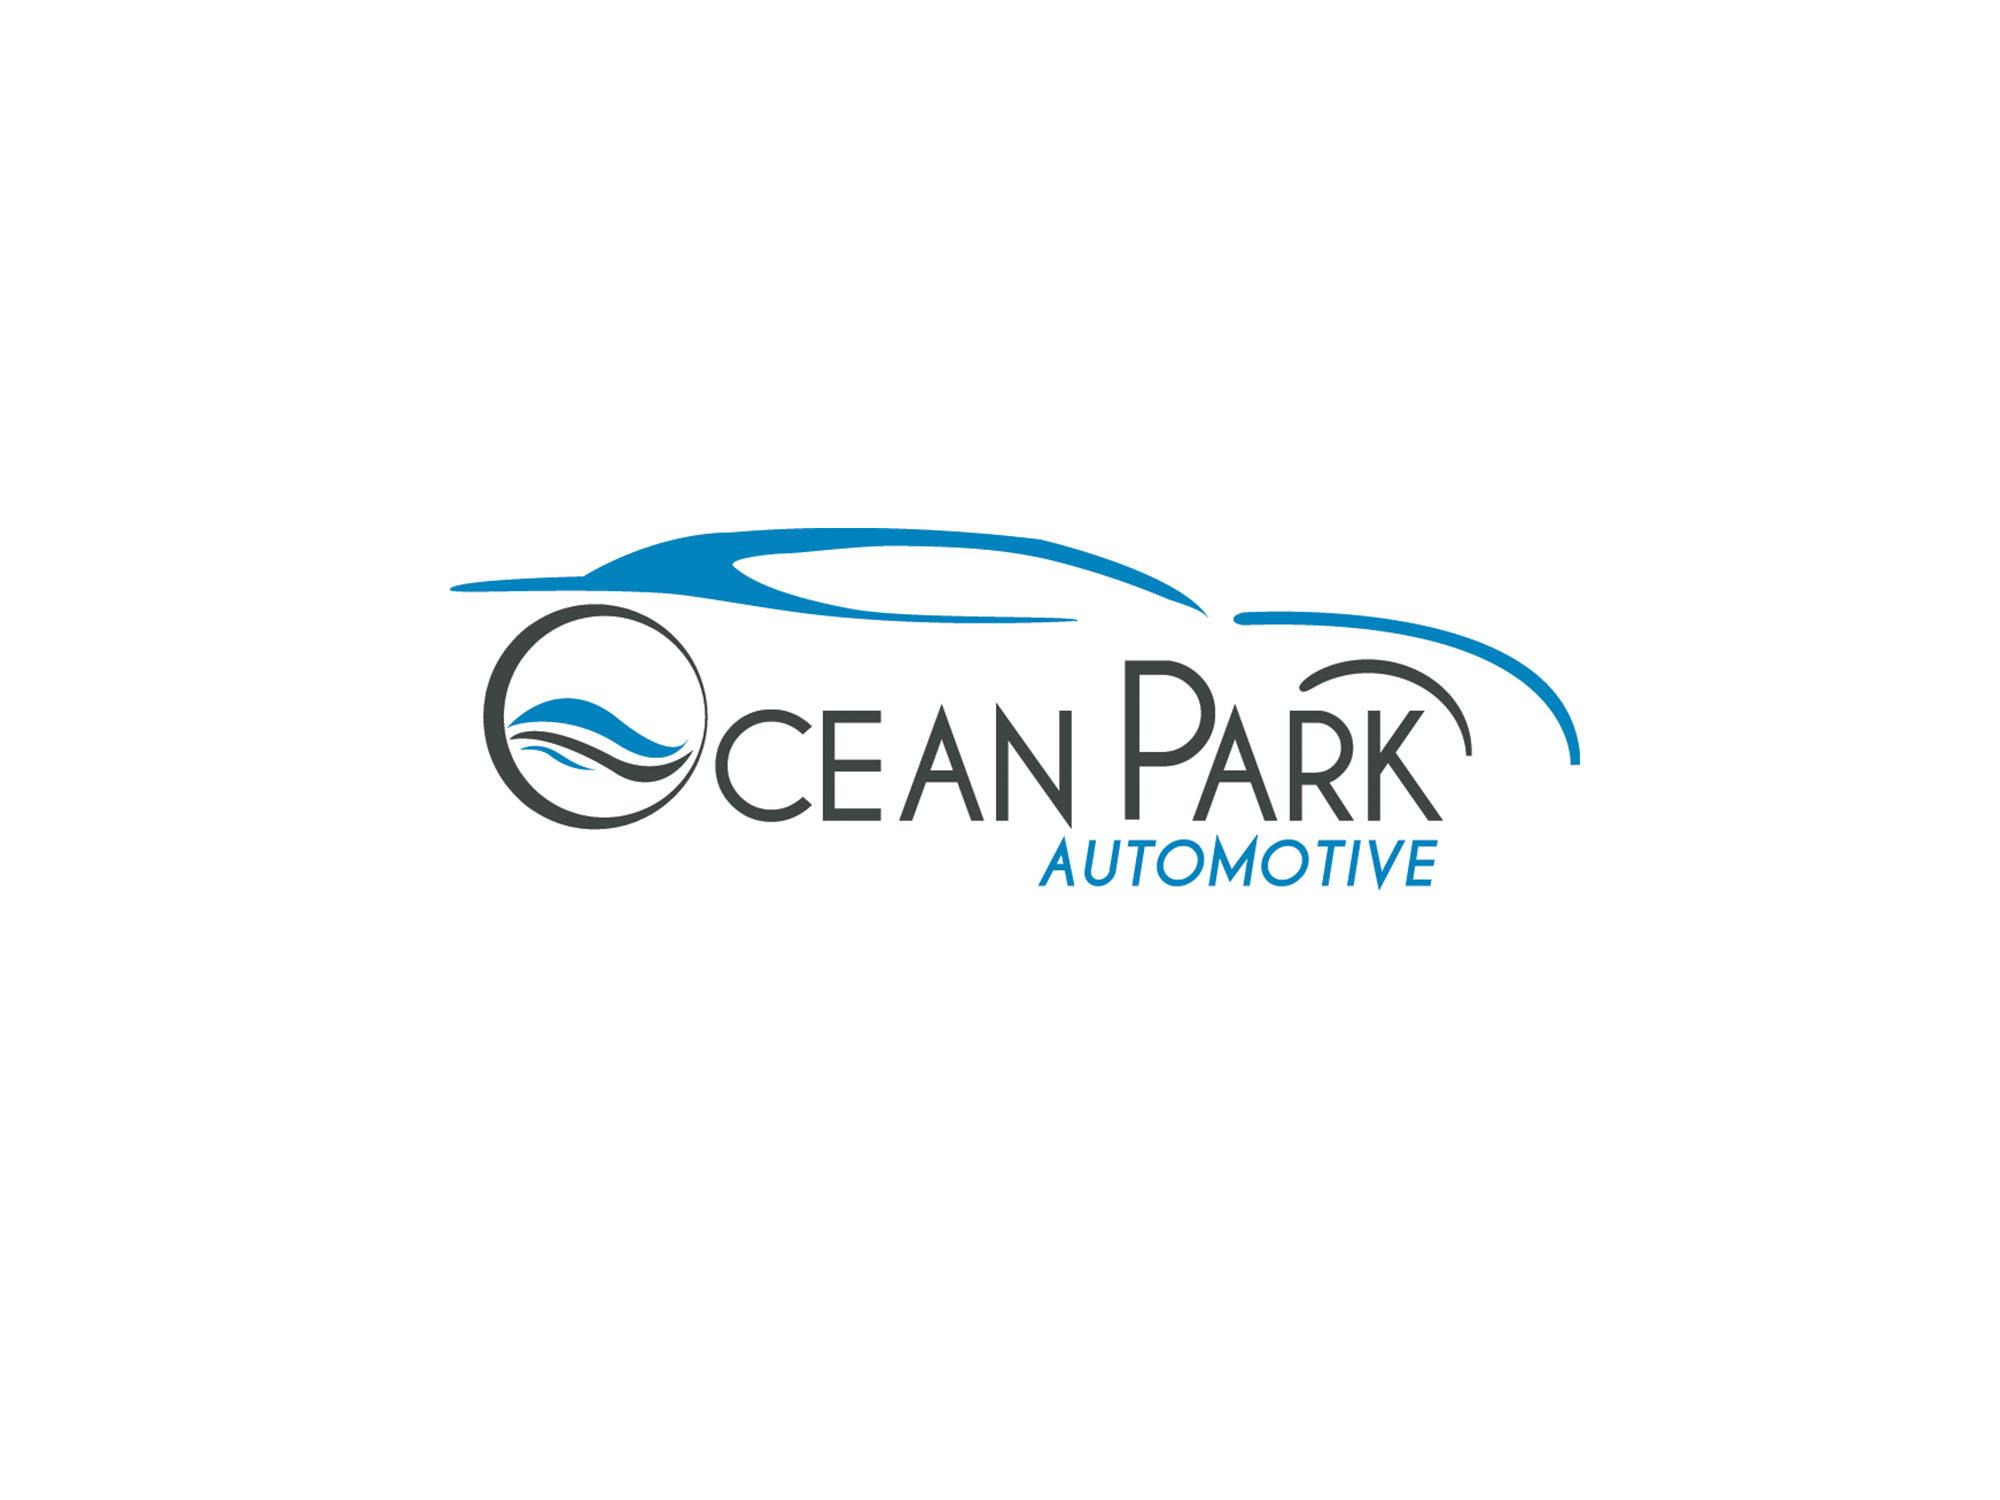 Ocean Park Automotive logo